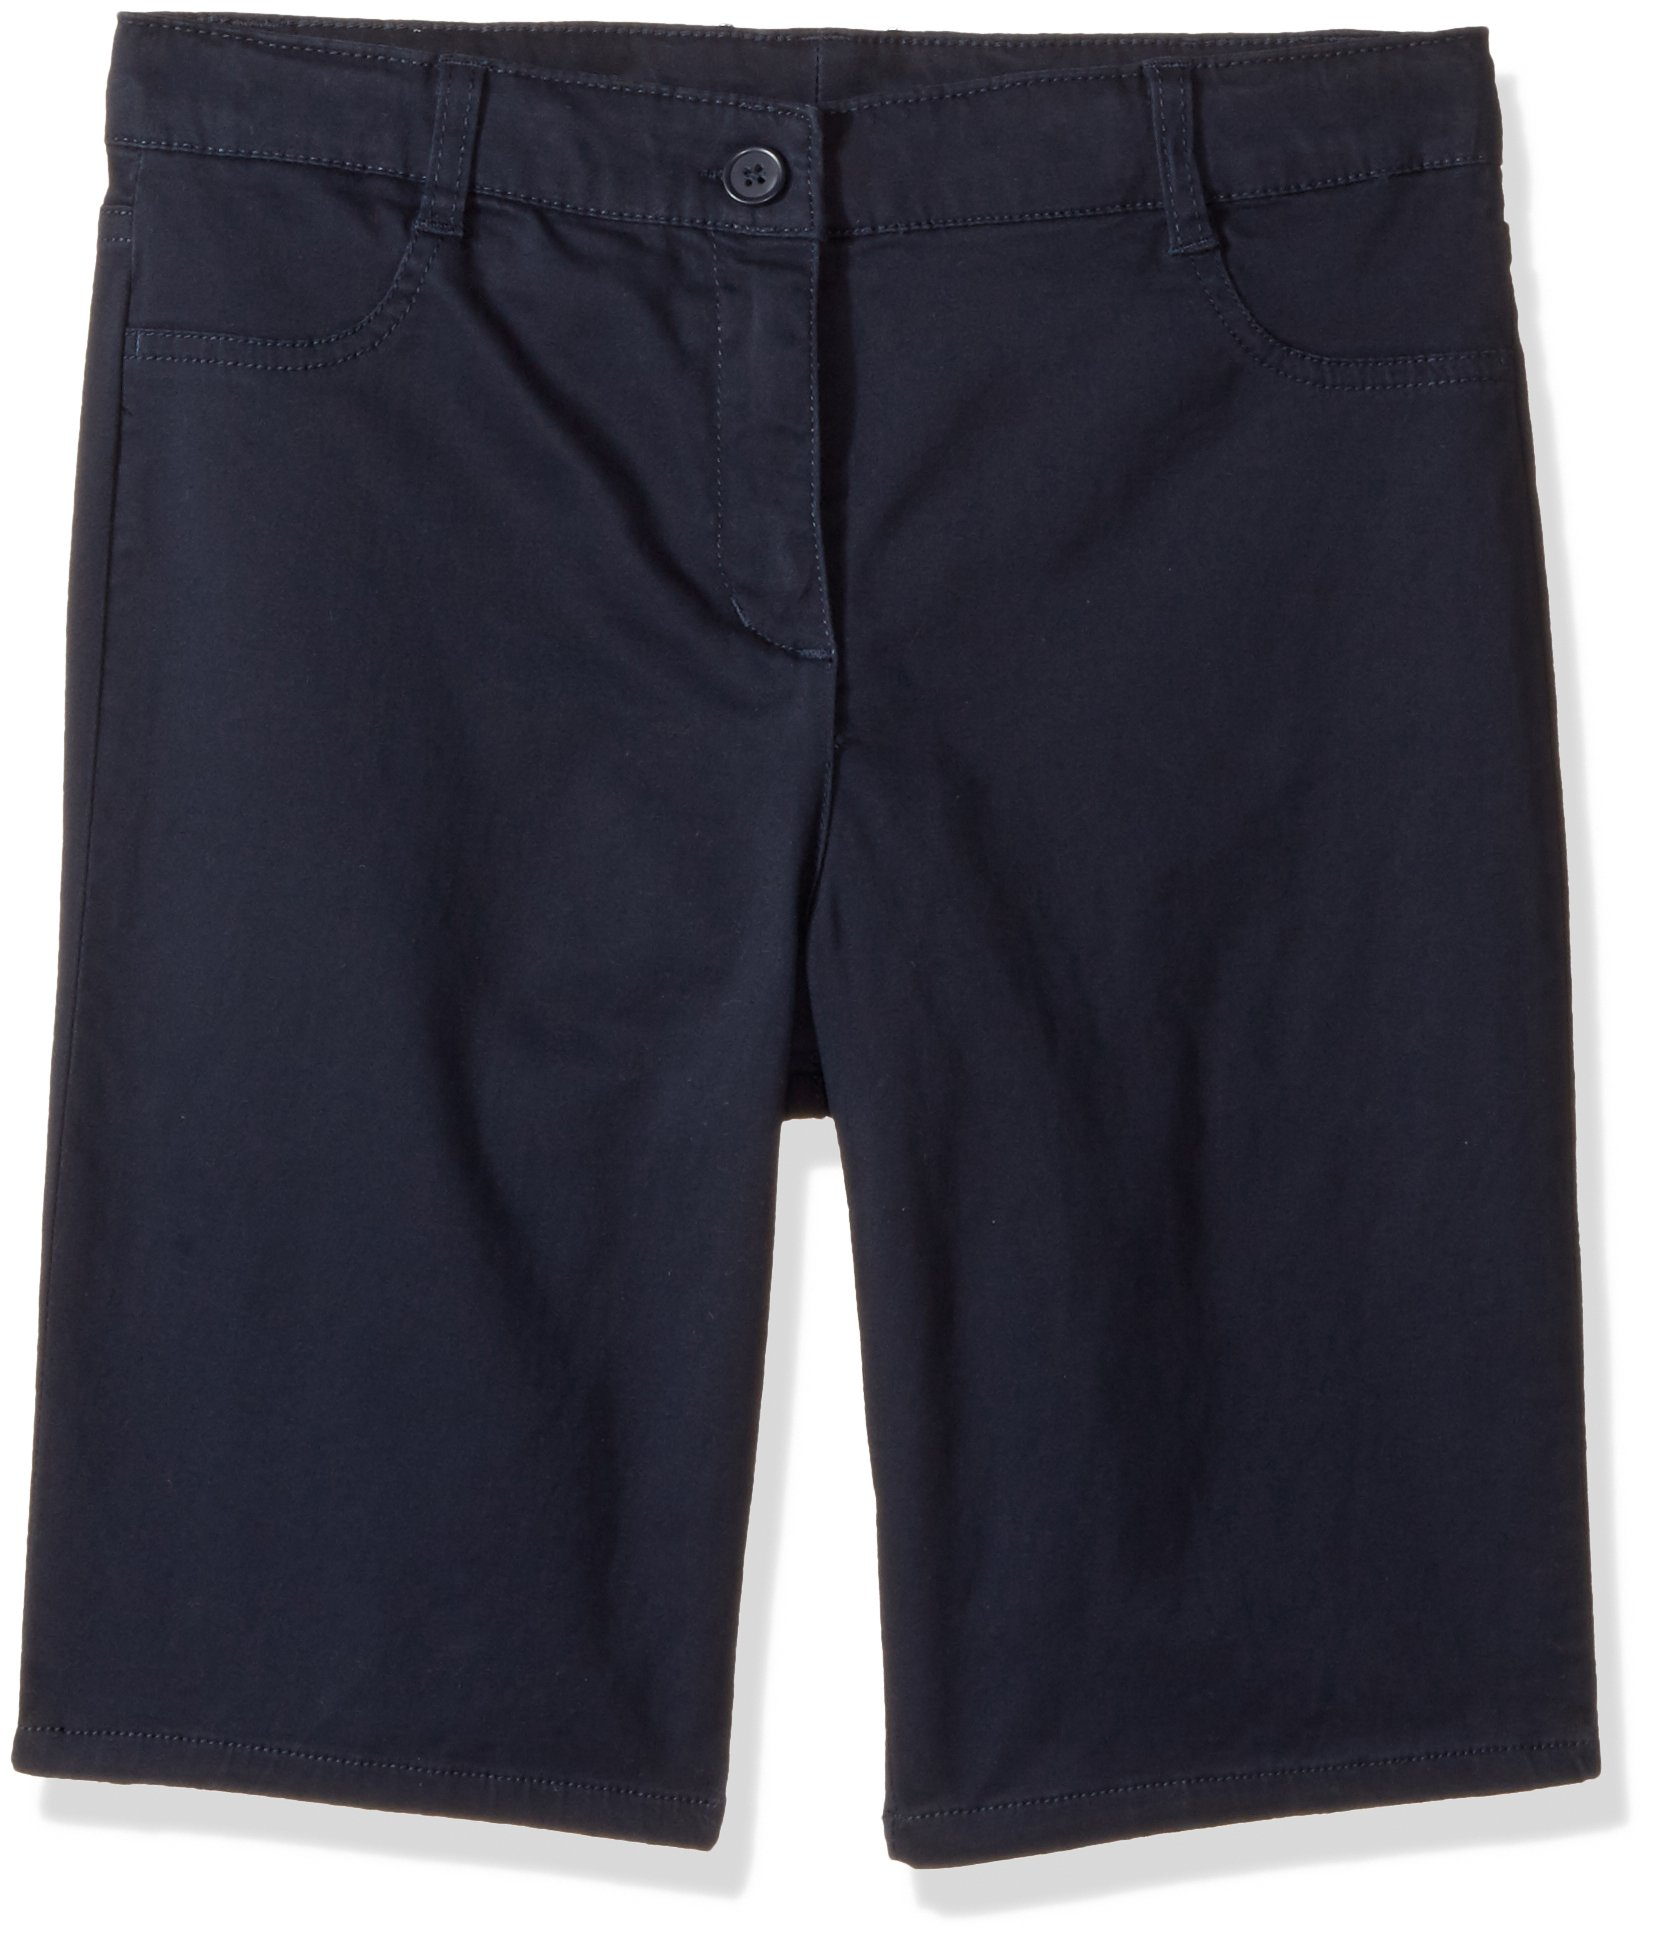 Nautica Girls Plus Size' Twill Bermuda Short, Su Navy/Five Pocket, 16.5